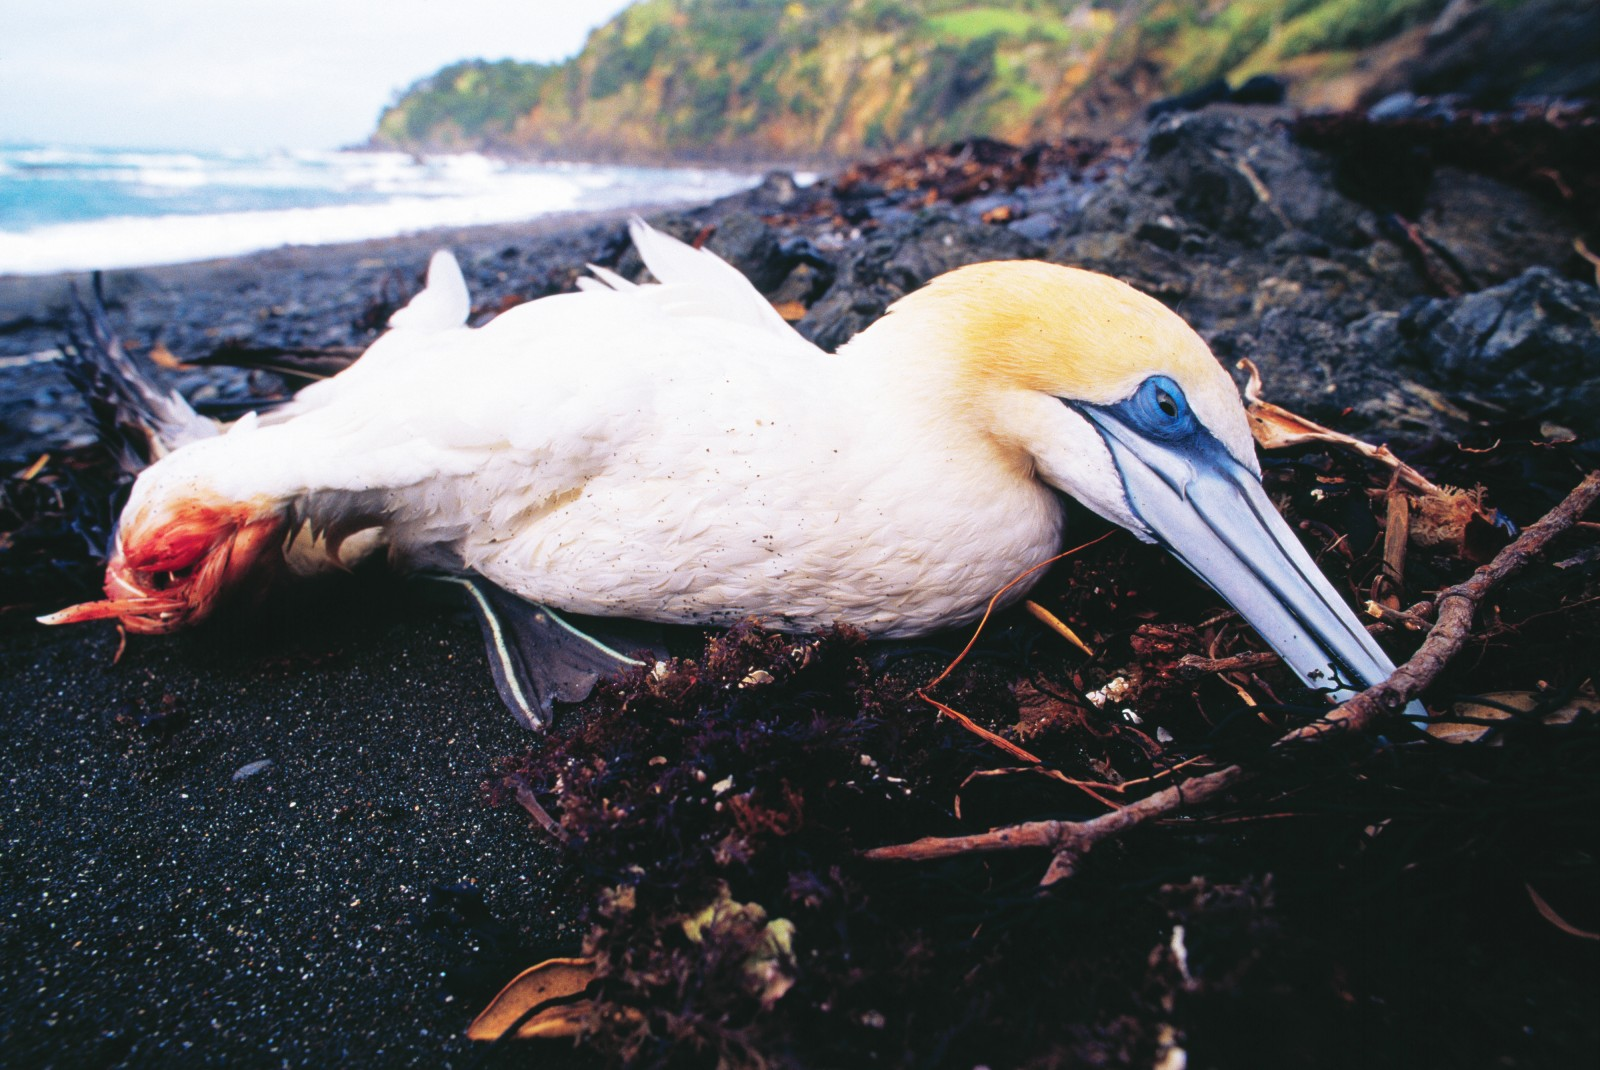 The main wing bone has snapped in this unfortunate bird, dying on an east coast beach after taking a battering from a storm. Another day and it will be reduced to a nondescript corpse for seagulls to scavenge. Despite living in an environment always devoid of shelter, gannets are thought to be long-lived, capable of surviving for 20 or 30 years.